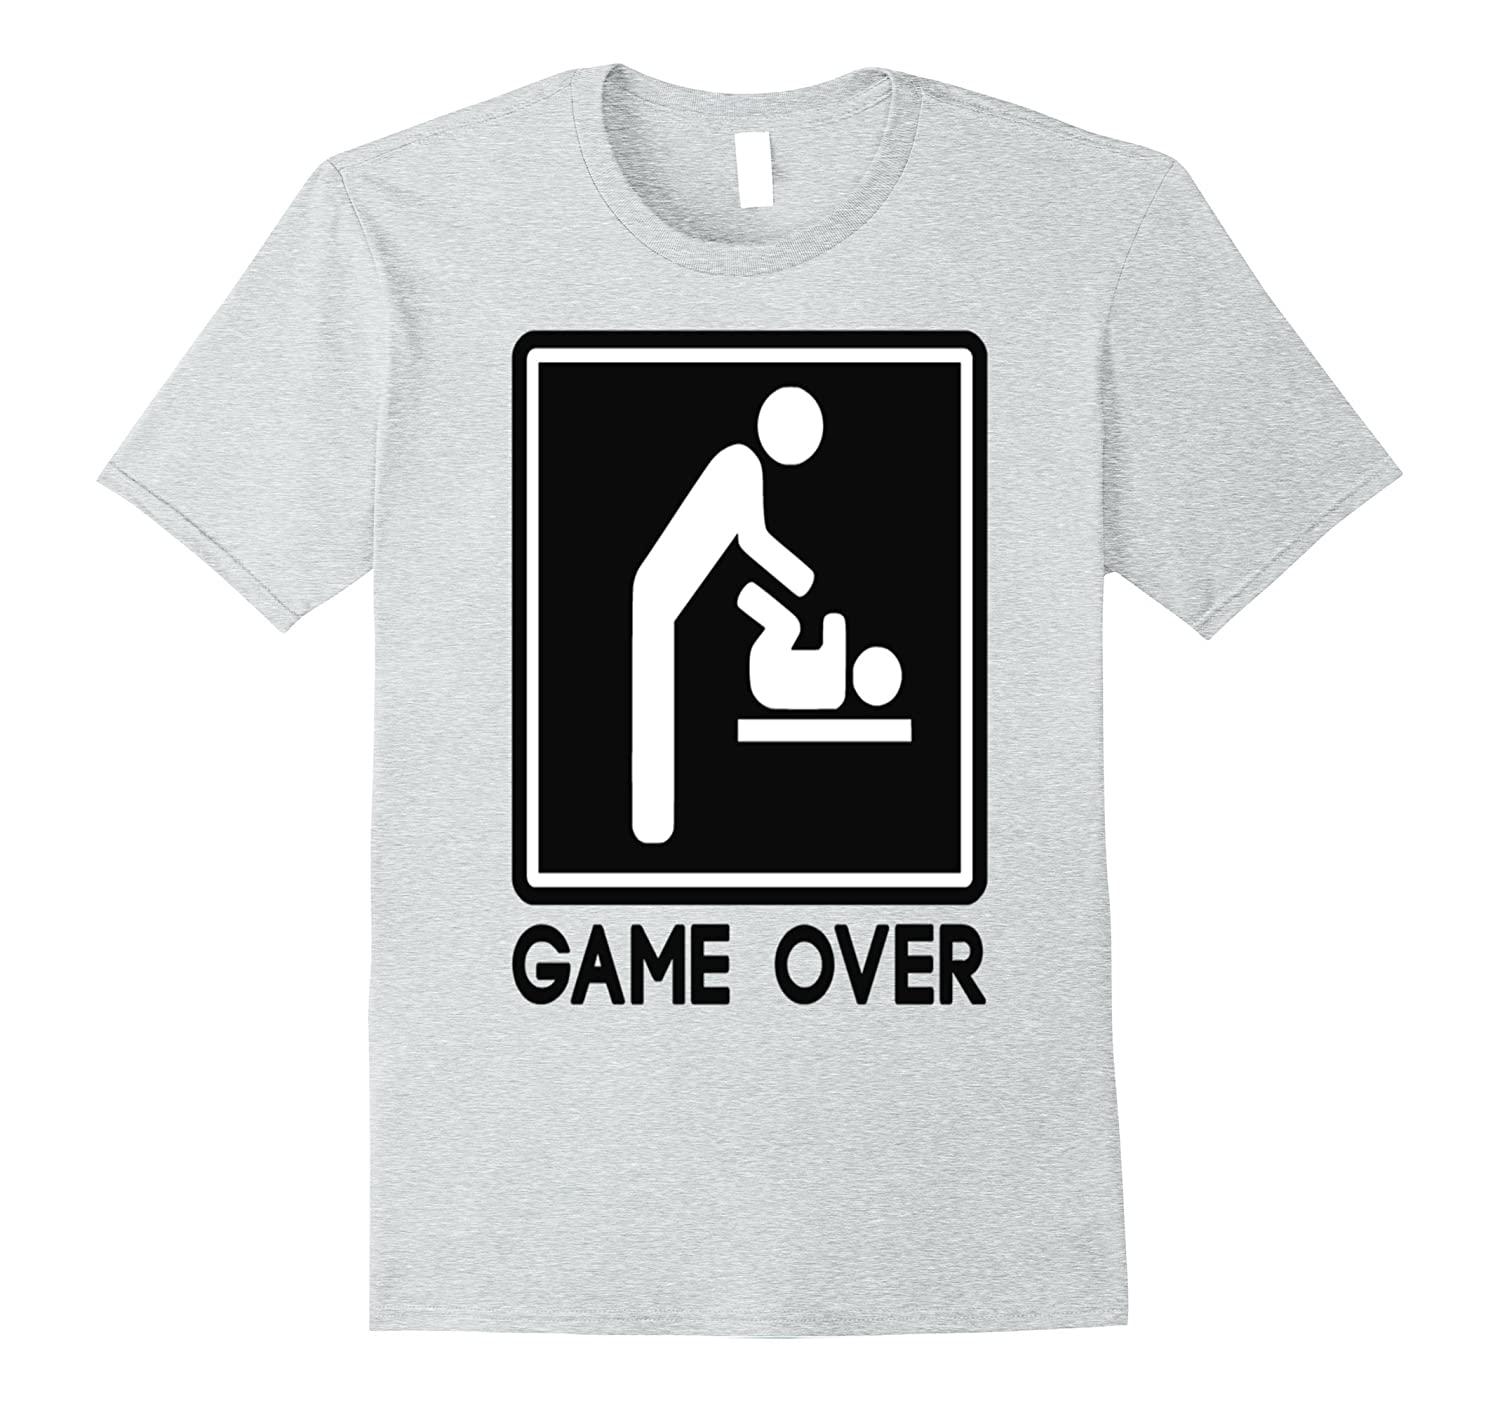 b485b030 Mens Game Over New Dad Tshirt Baby Announcement Tshirt Fathers-Vaci ...